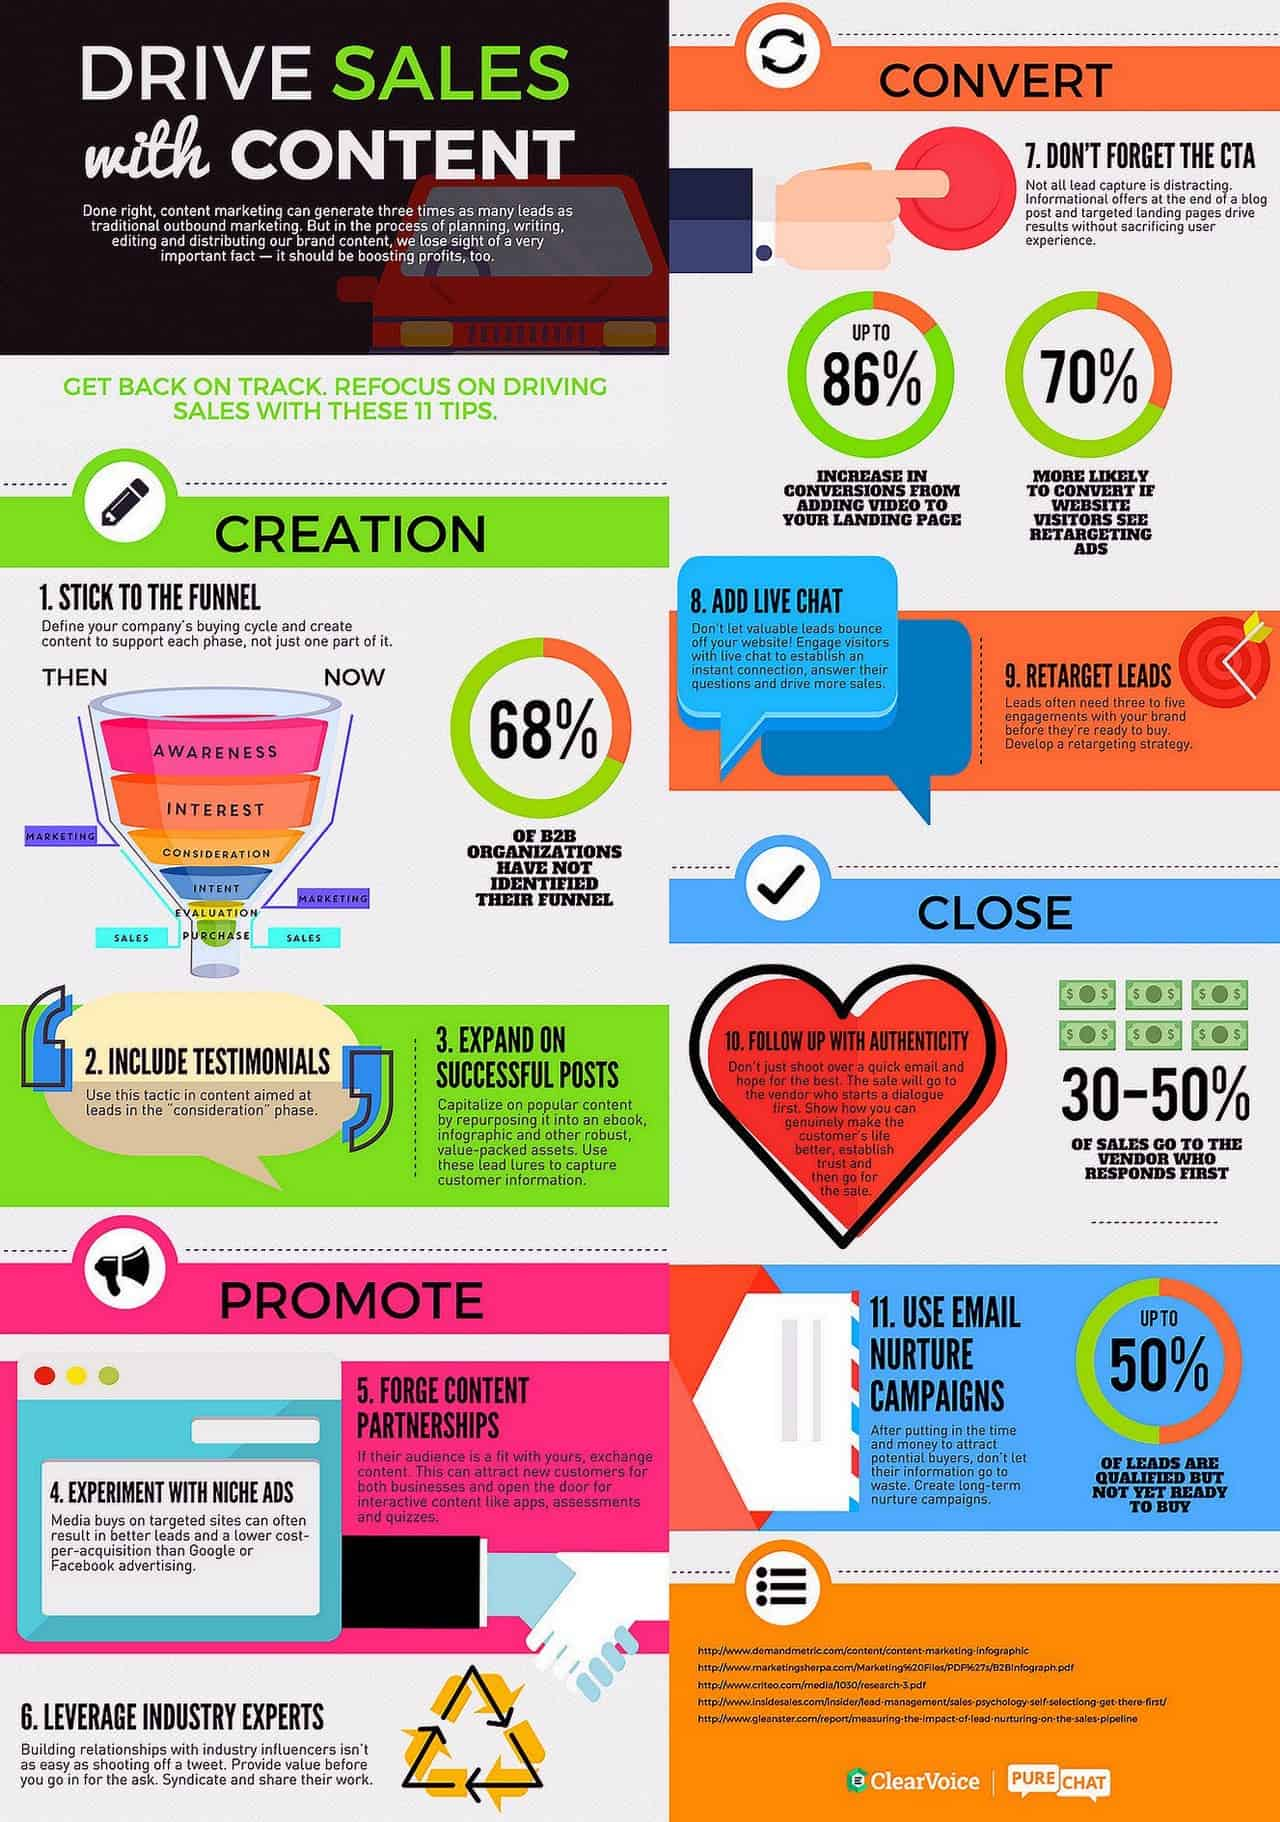 For more tips and tricks on how to drive sales with content marketing, check out this great infographic.